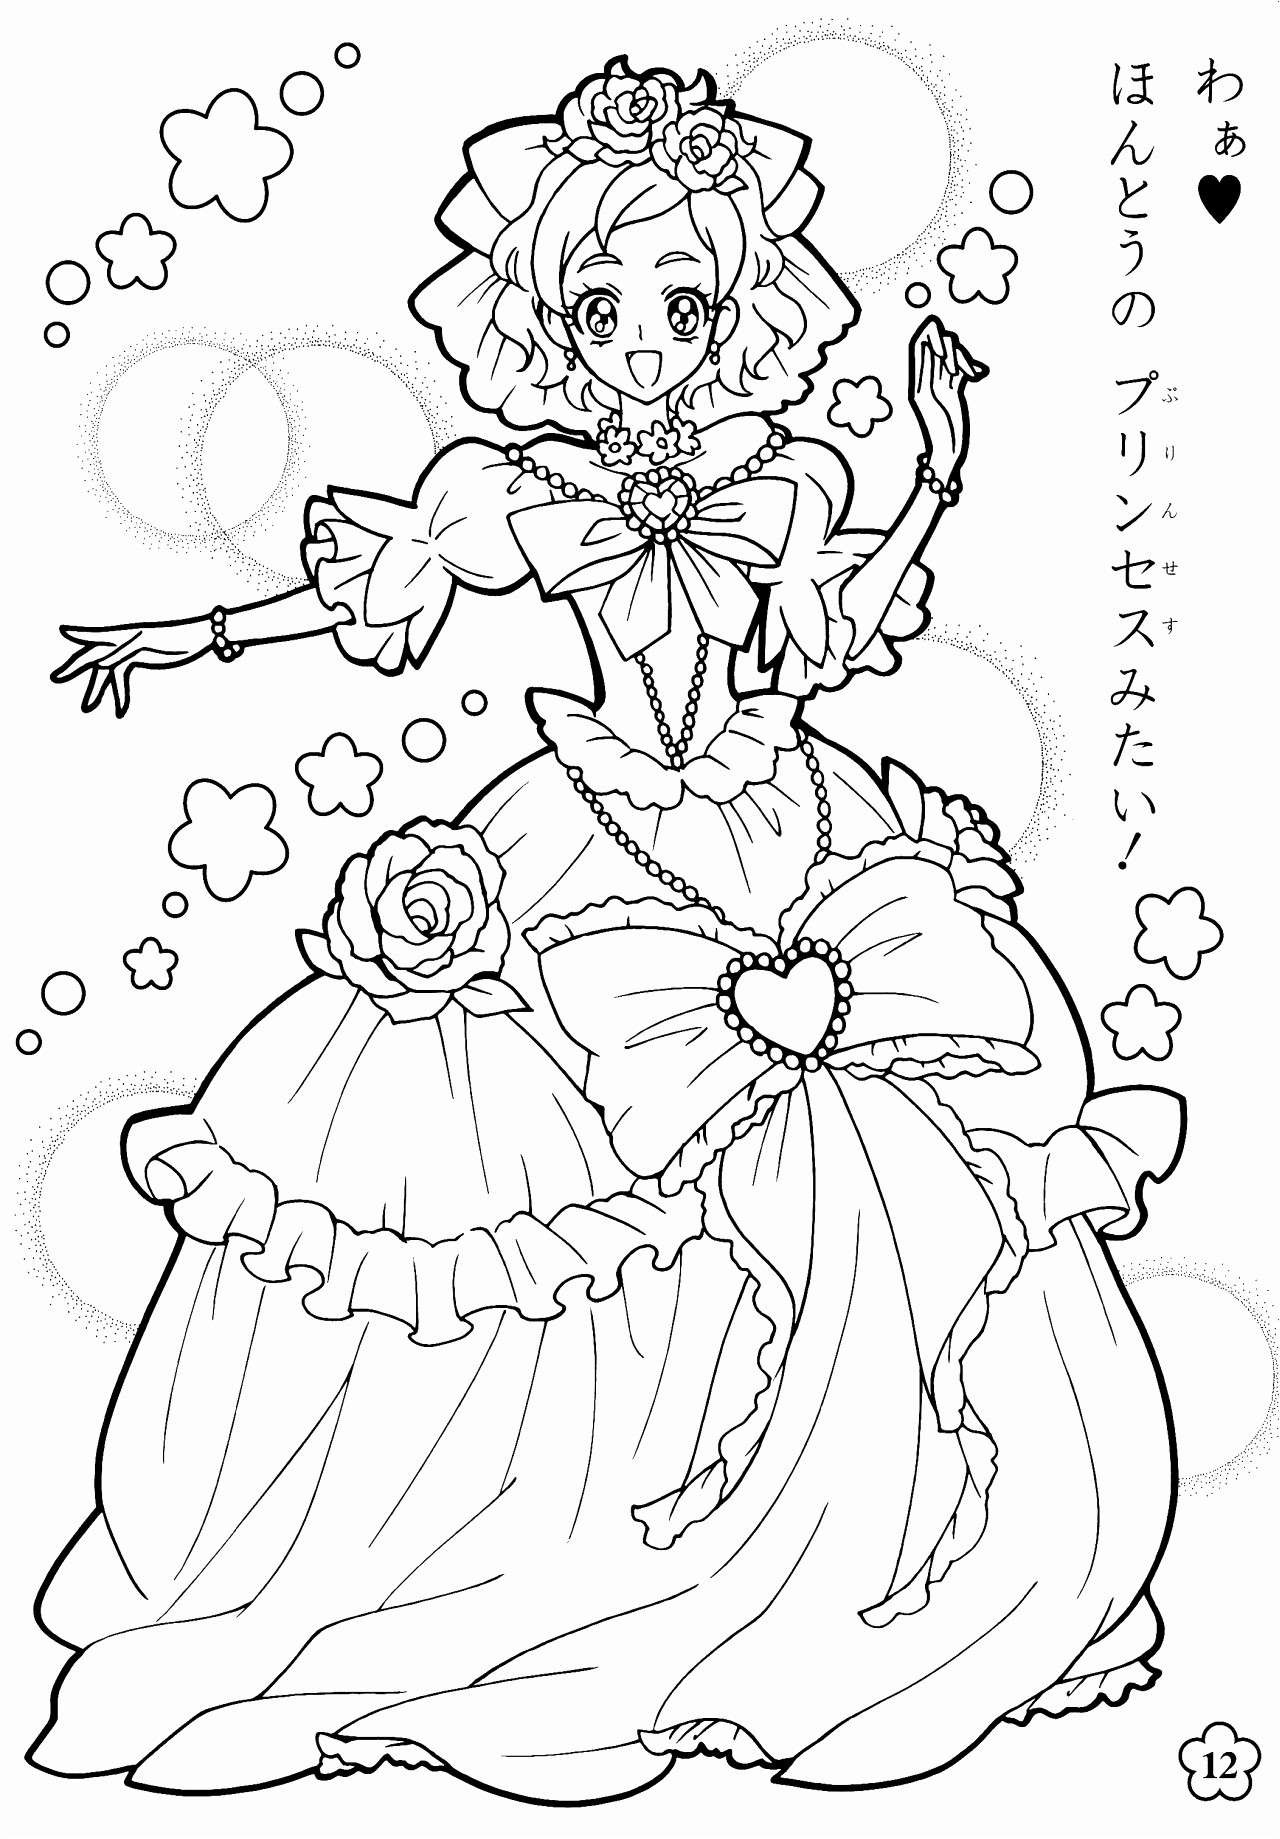 elsa coloring pages Download-Coloring Activities Best Cool Coloring Page Unique Witch Coloring Pages New Crayola Pages 0d 6-b